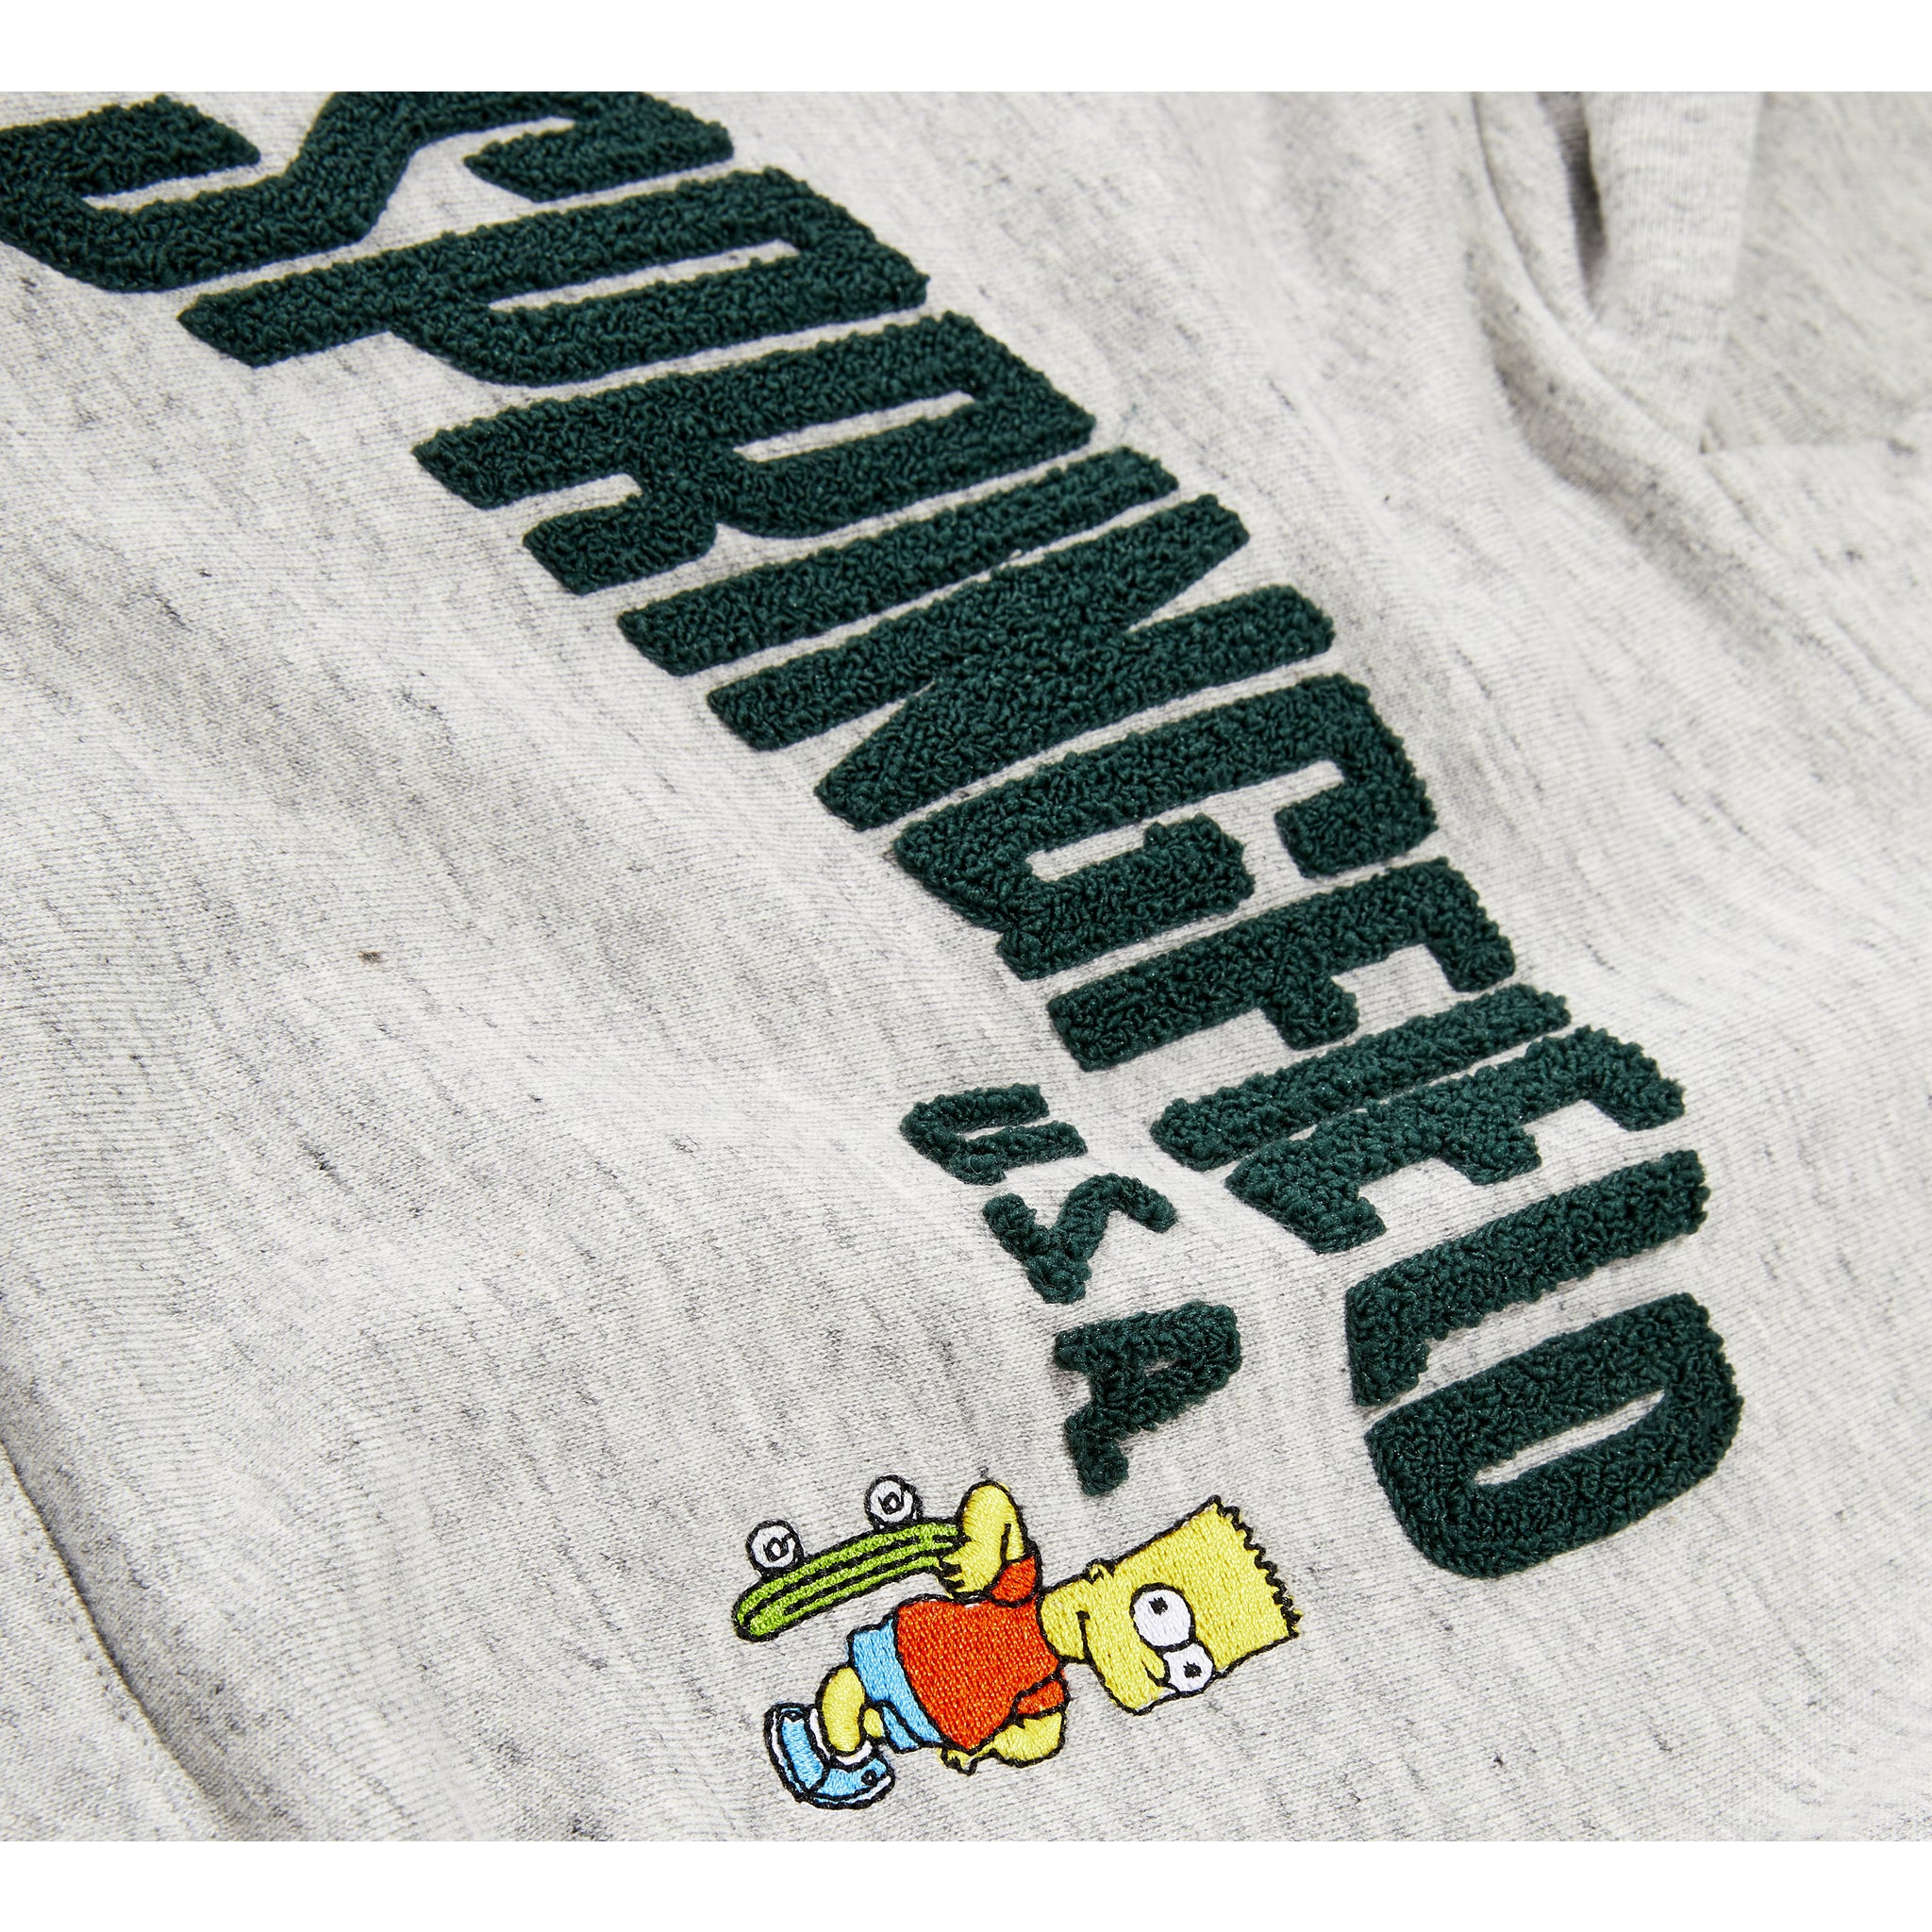 MELBOURNE Heather Cloud Springfield - Unisex Knitted Hoody 4 js-nozoom